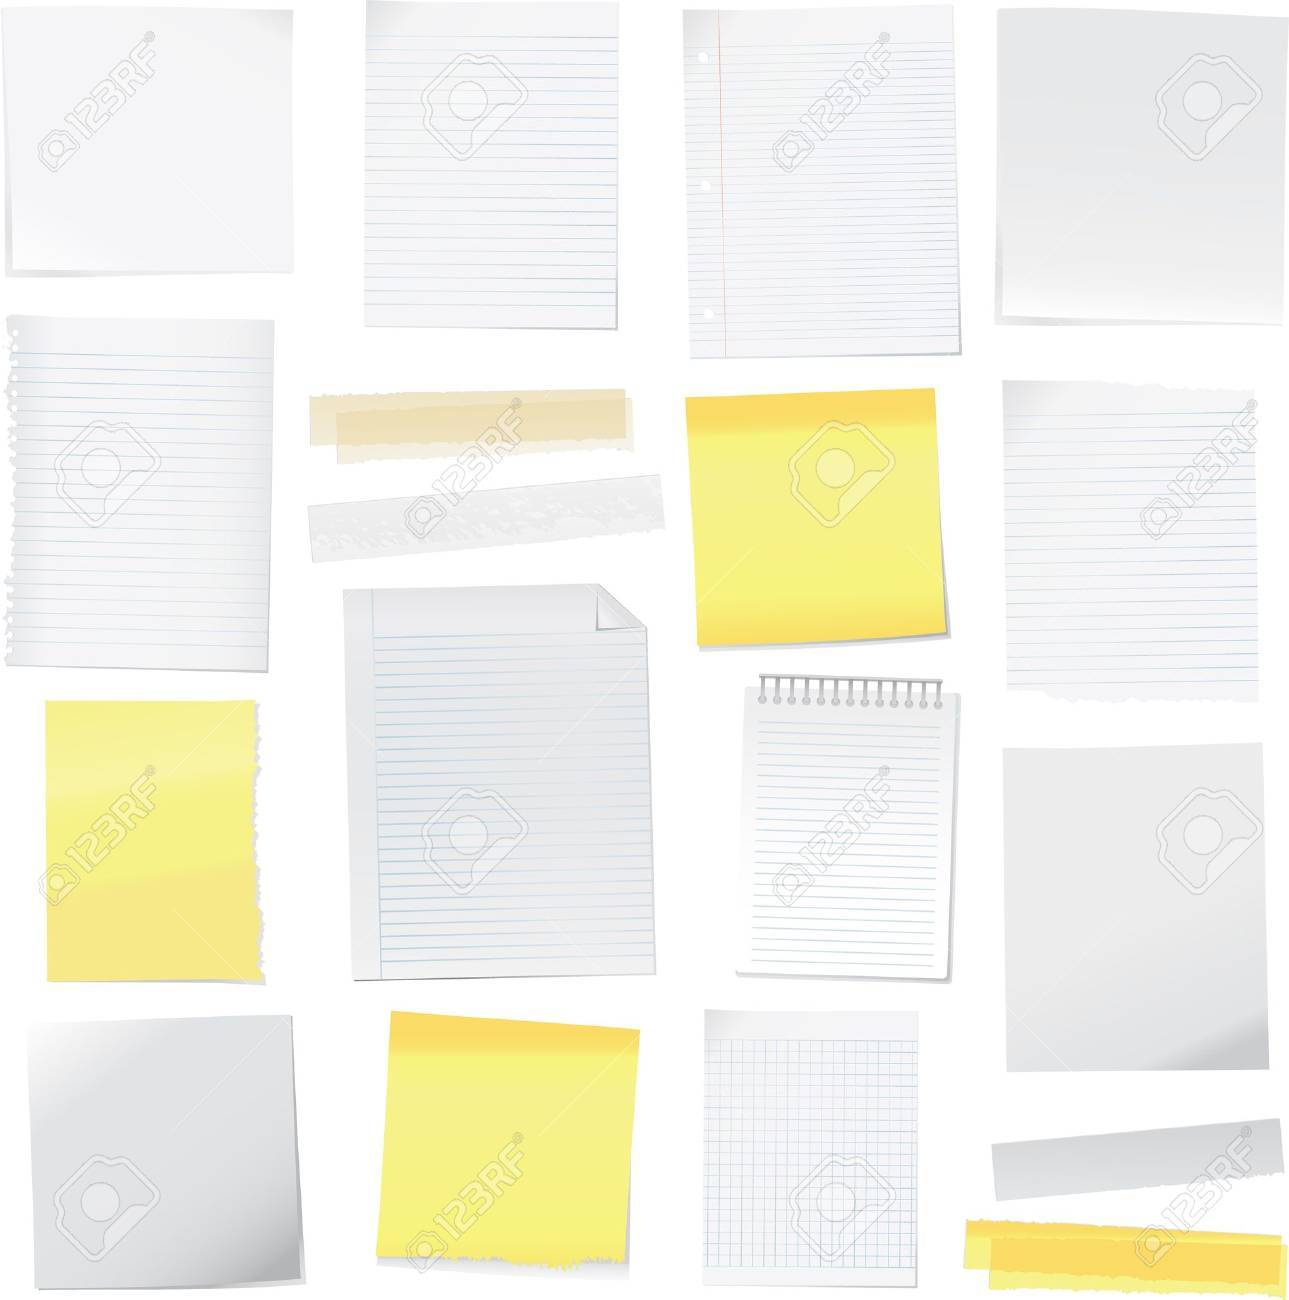 paper notes illustration Stock Vector - 8692976